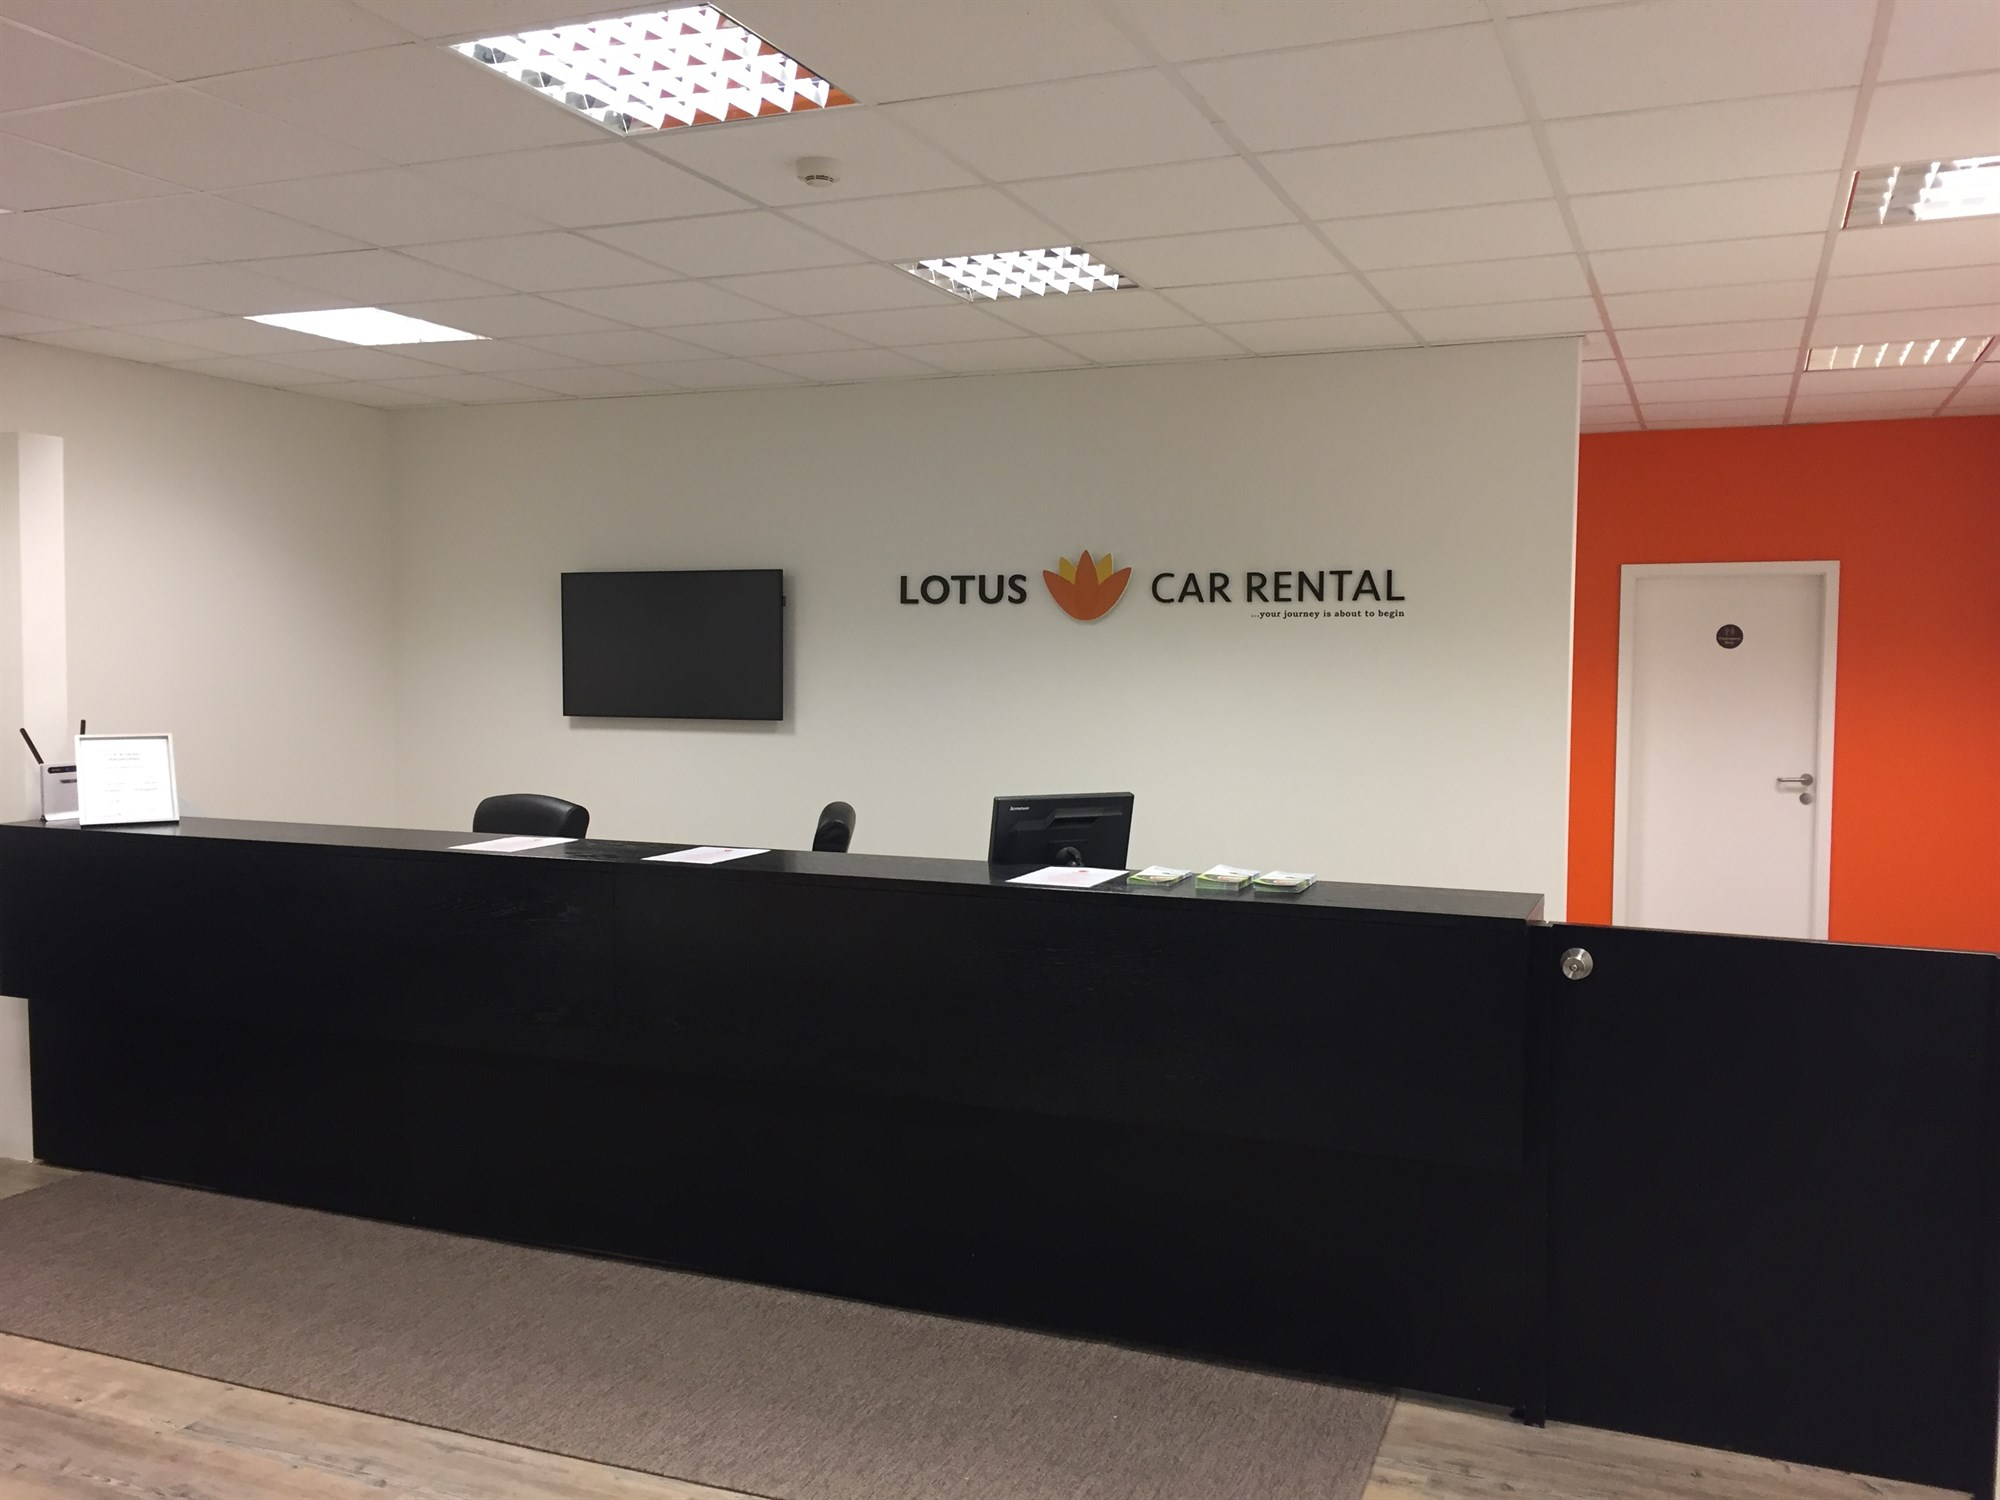 lotus car rental office reception desk